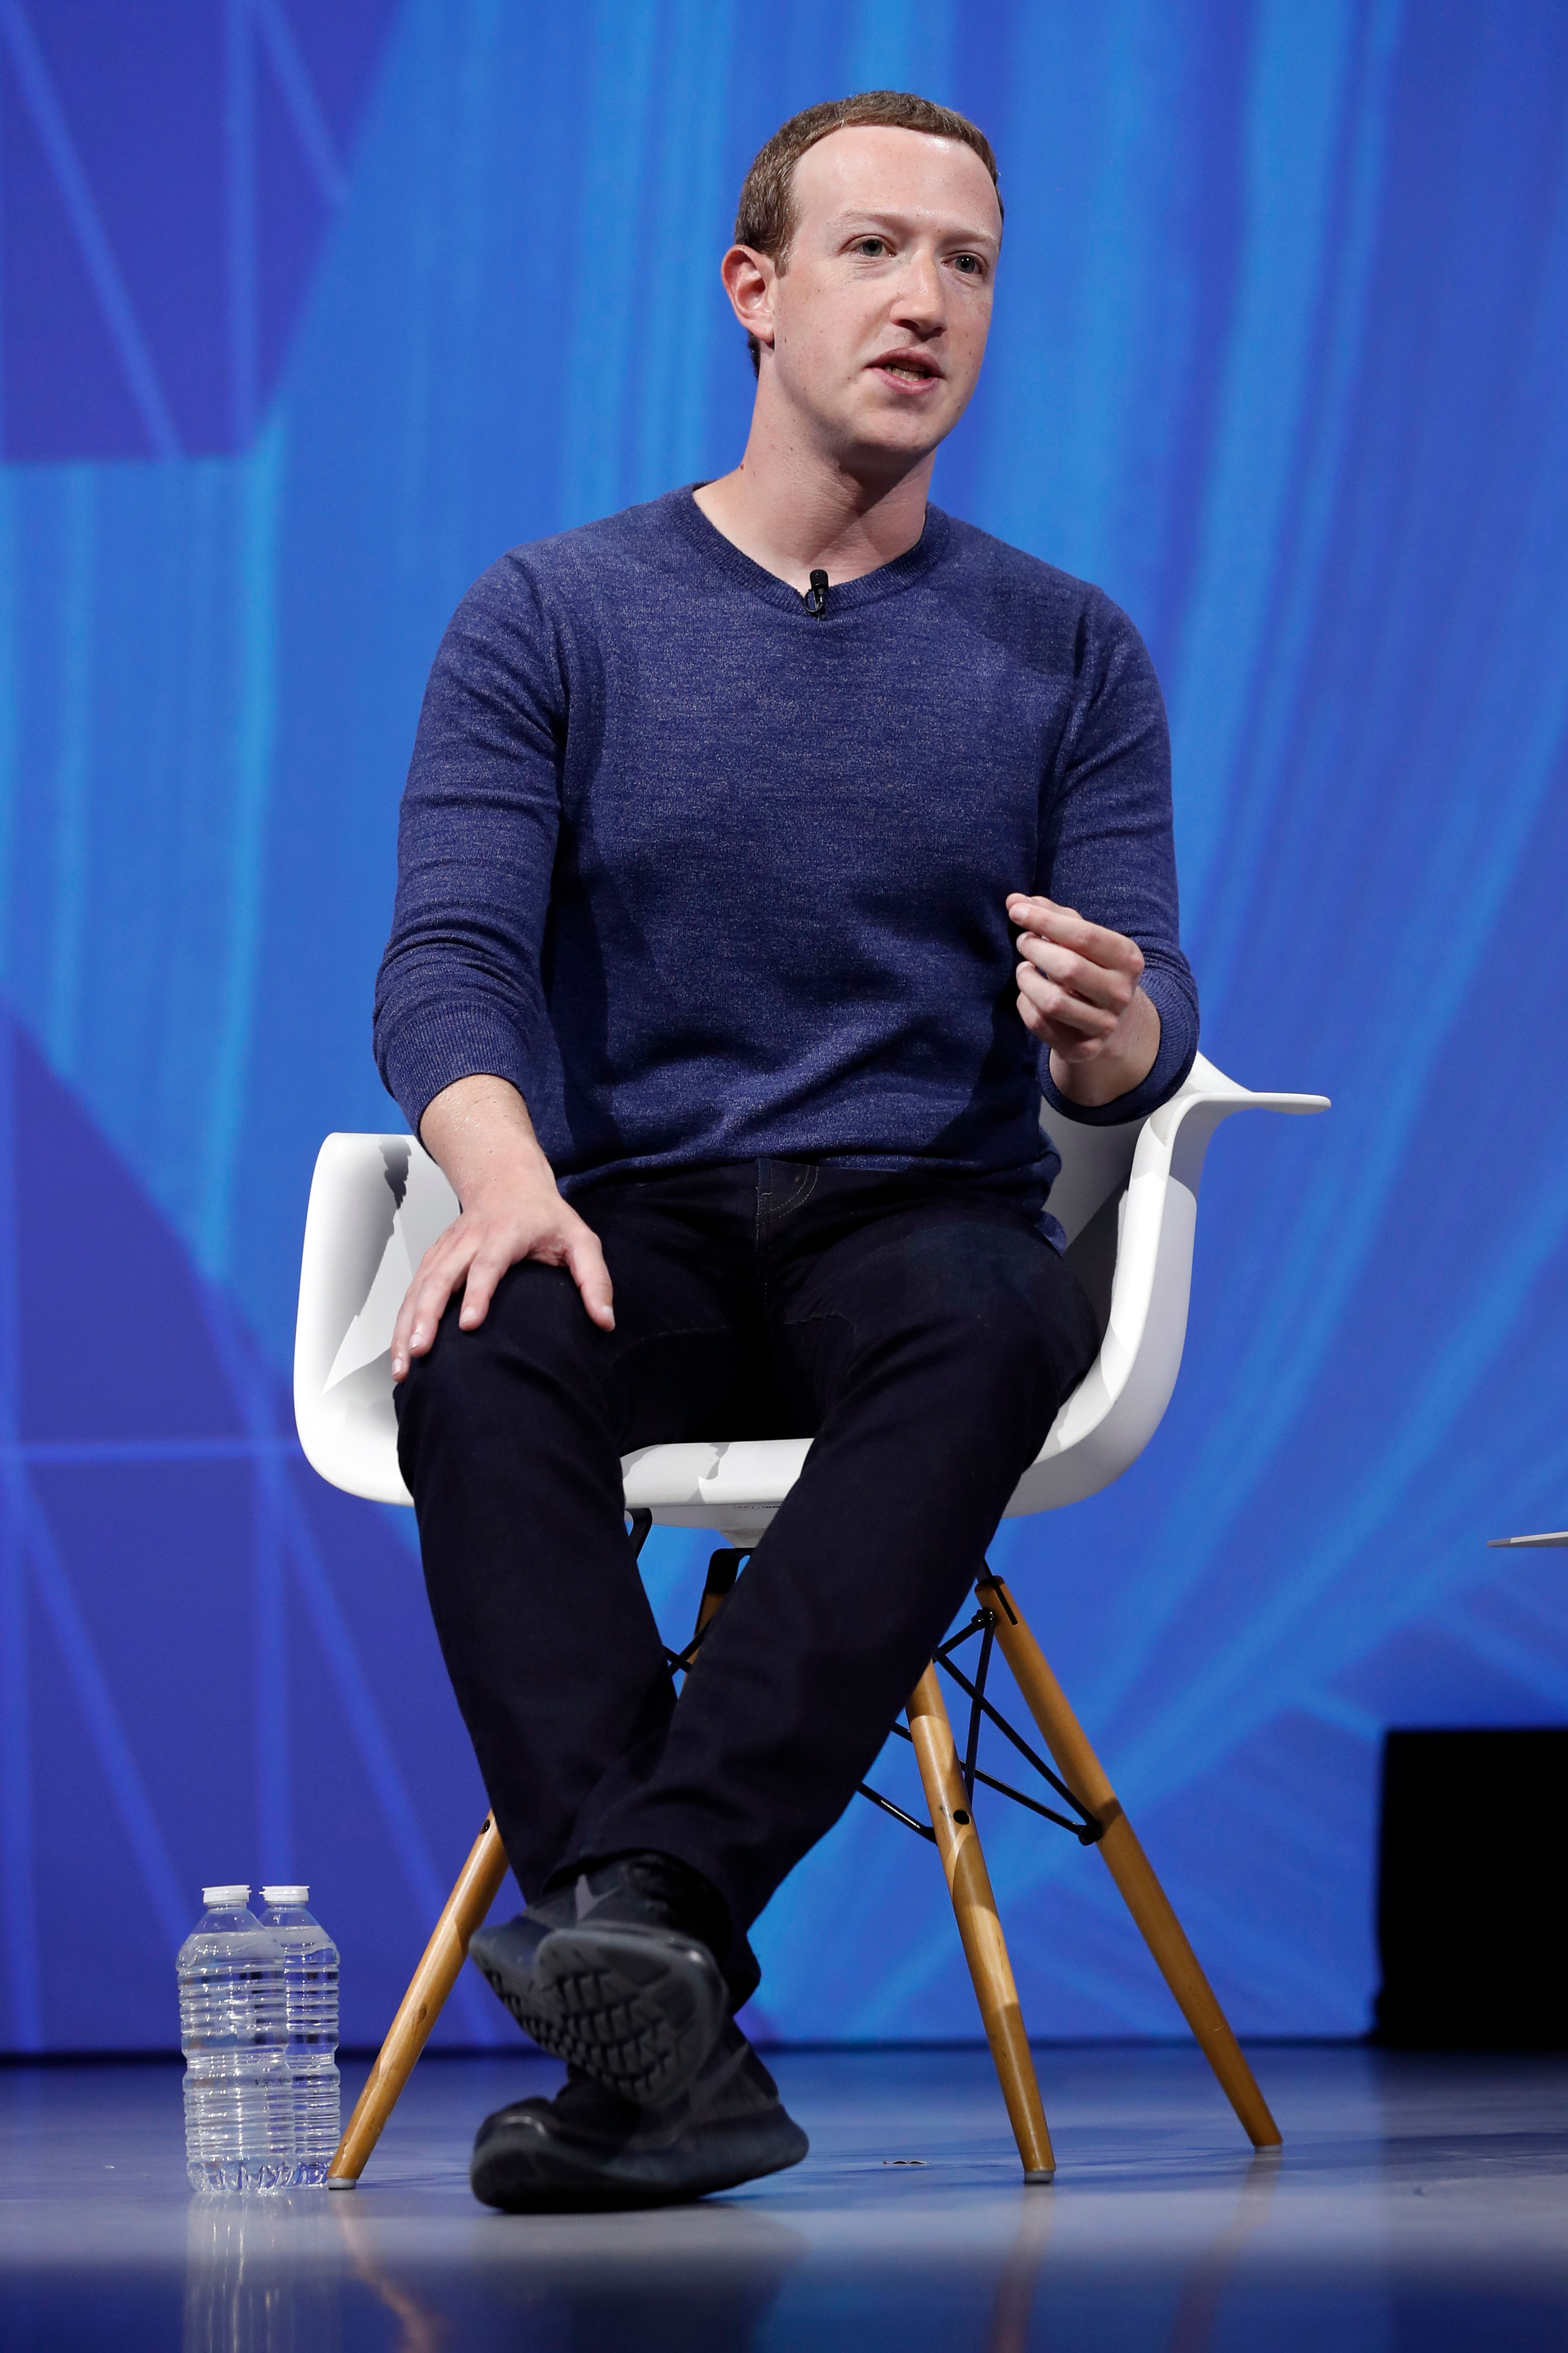 Mark ZuckerbergVivaTech fair in Paris, France - 24 May 2018 Facebook CEO Mark Zuckerberg speaks during the VivaTech fair in Paris, France, 24 May 2018. The annual commercial convention runs from the 24 to 26 May.